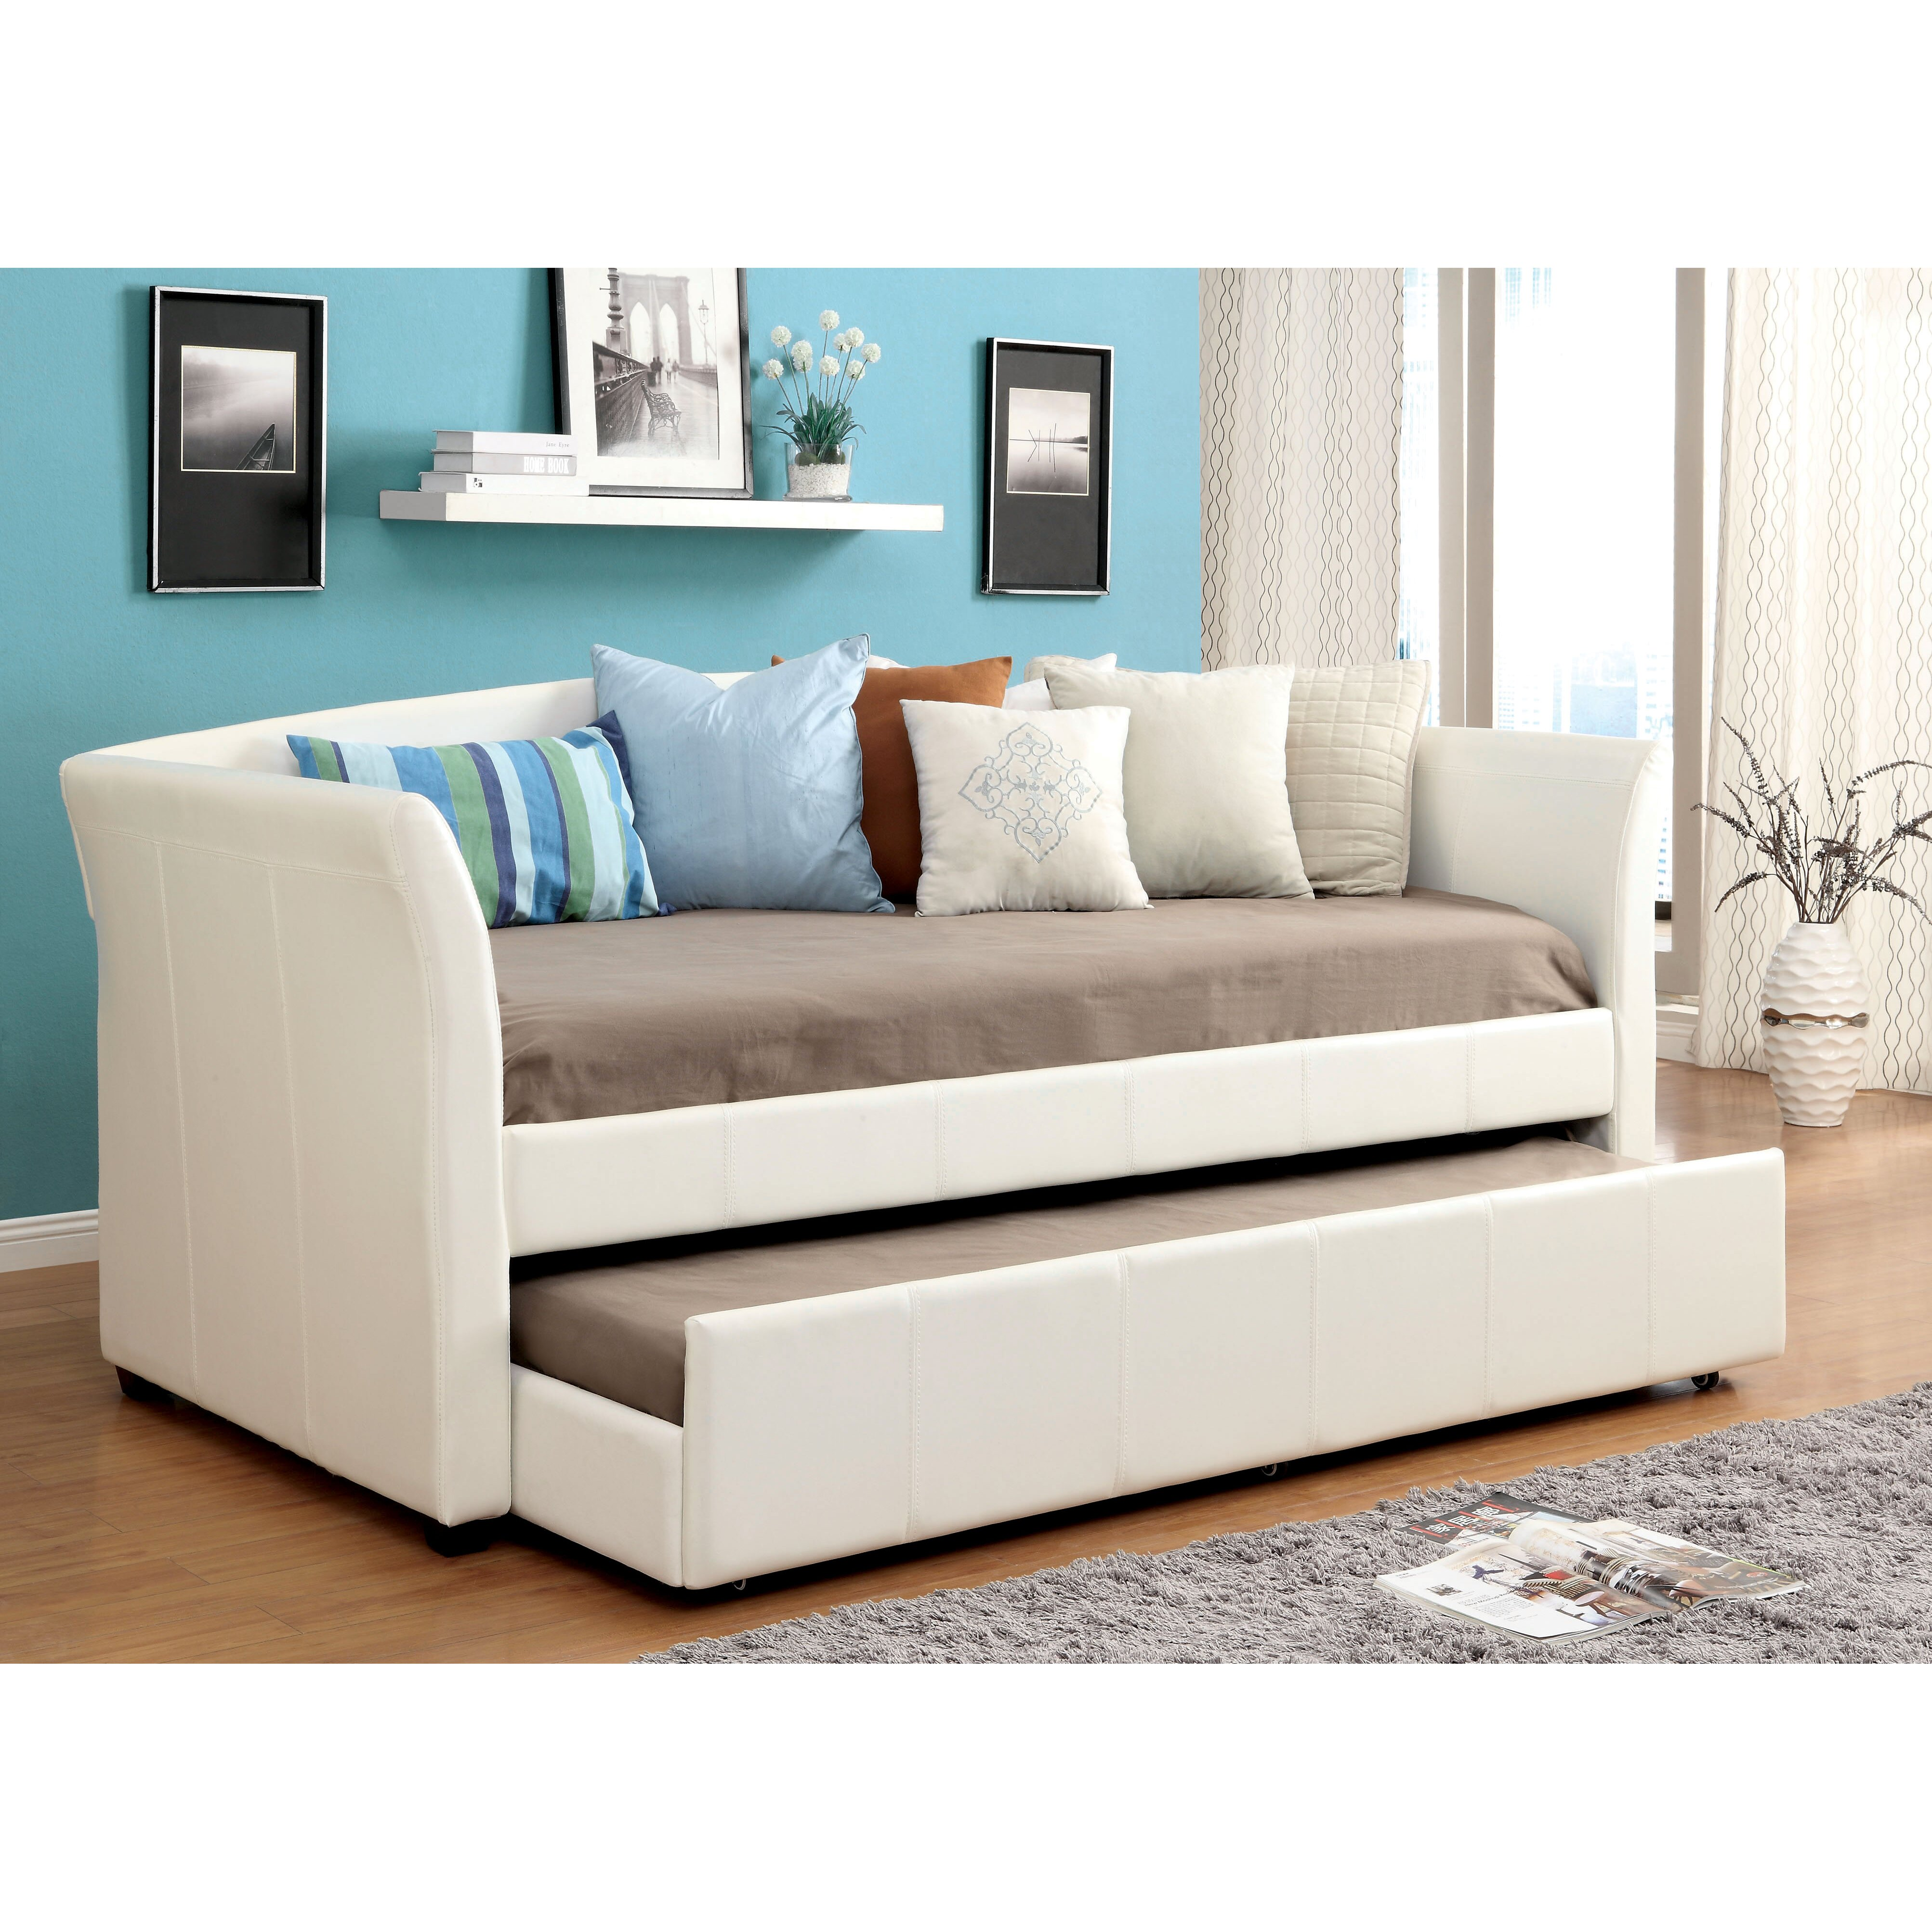 What are some benefits of daybeds with trundle?